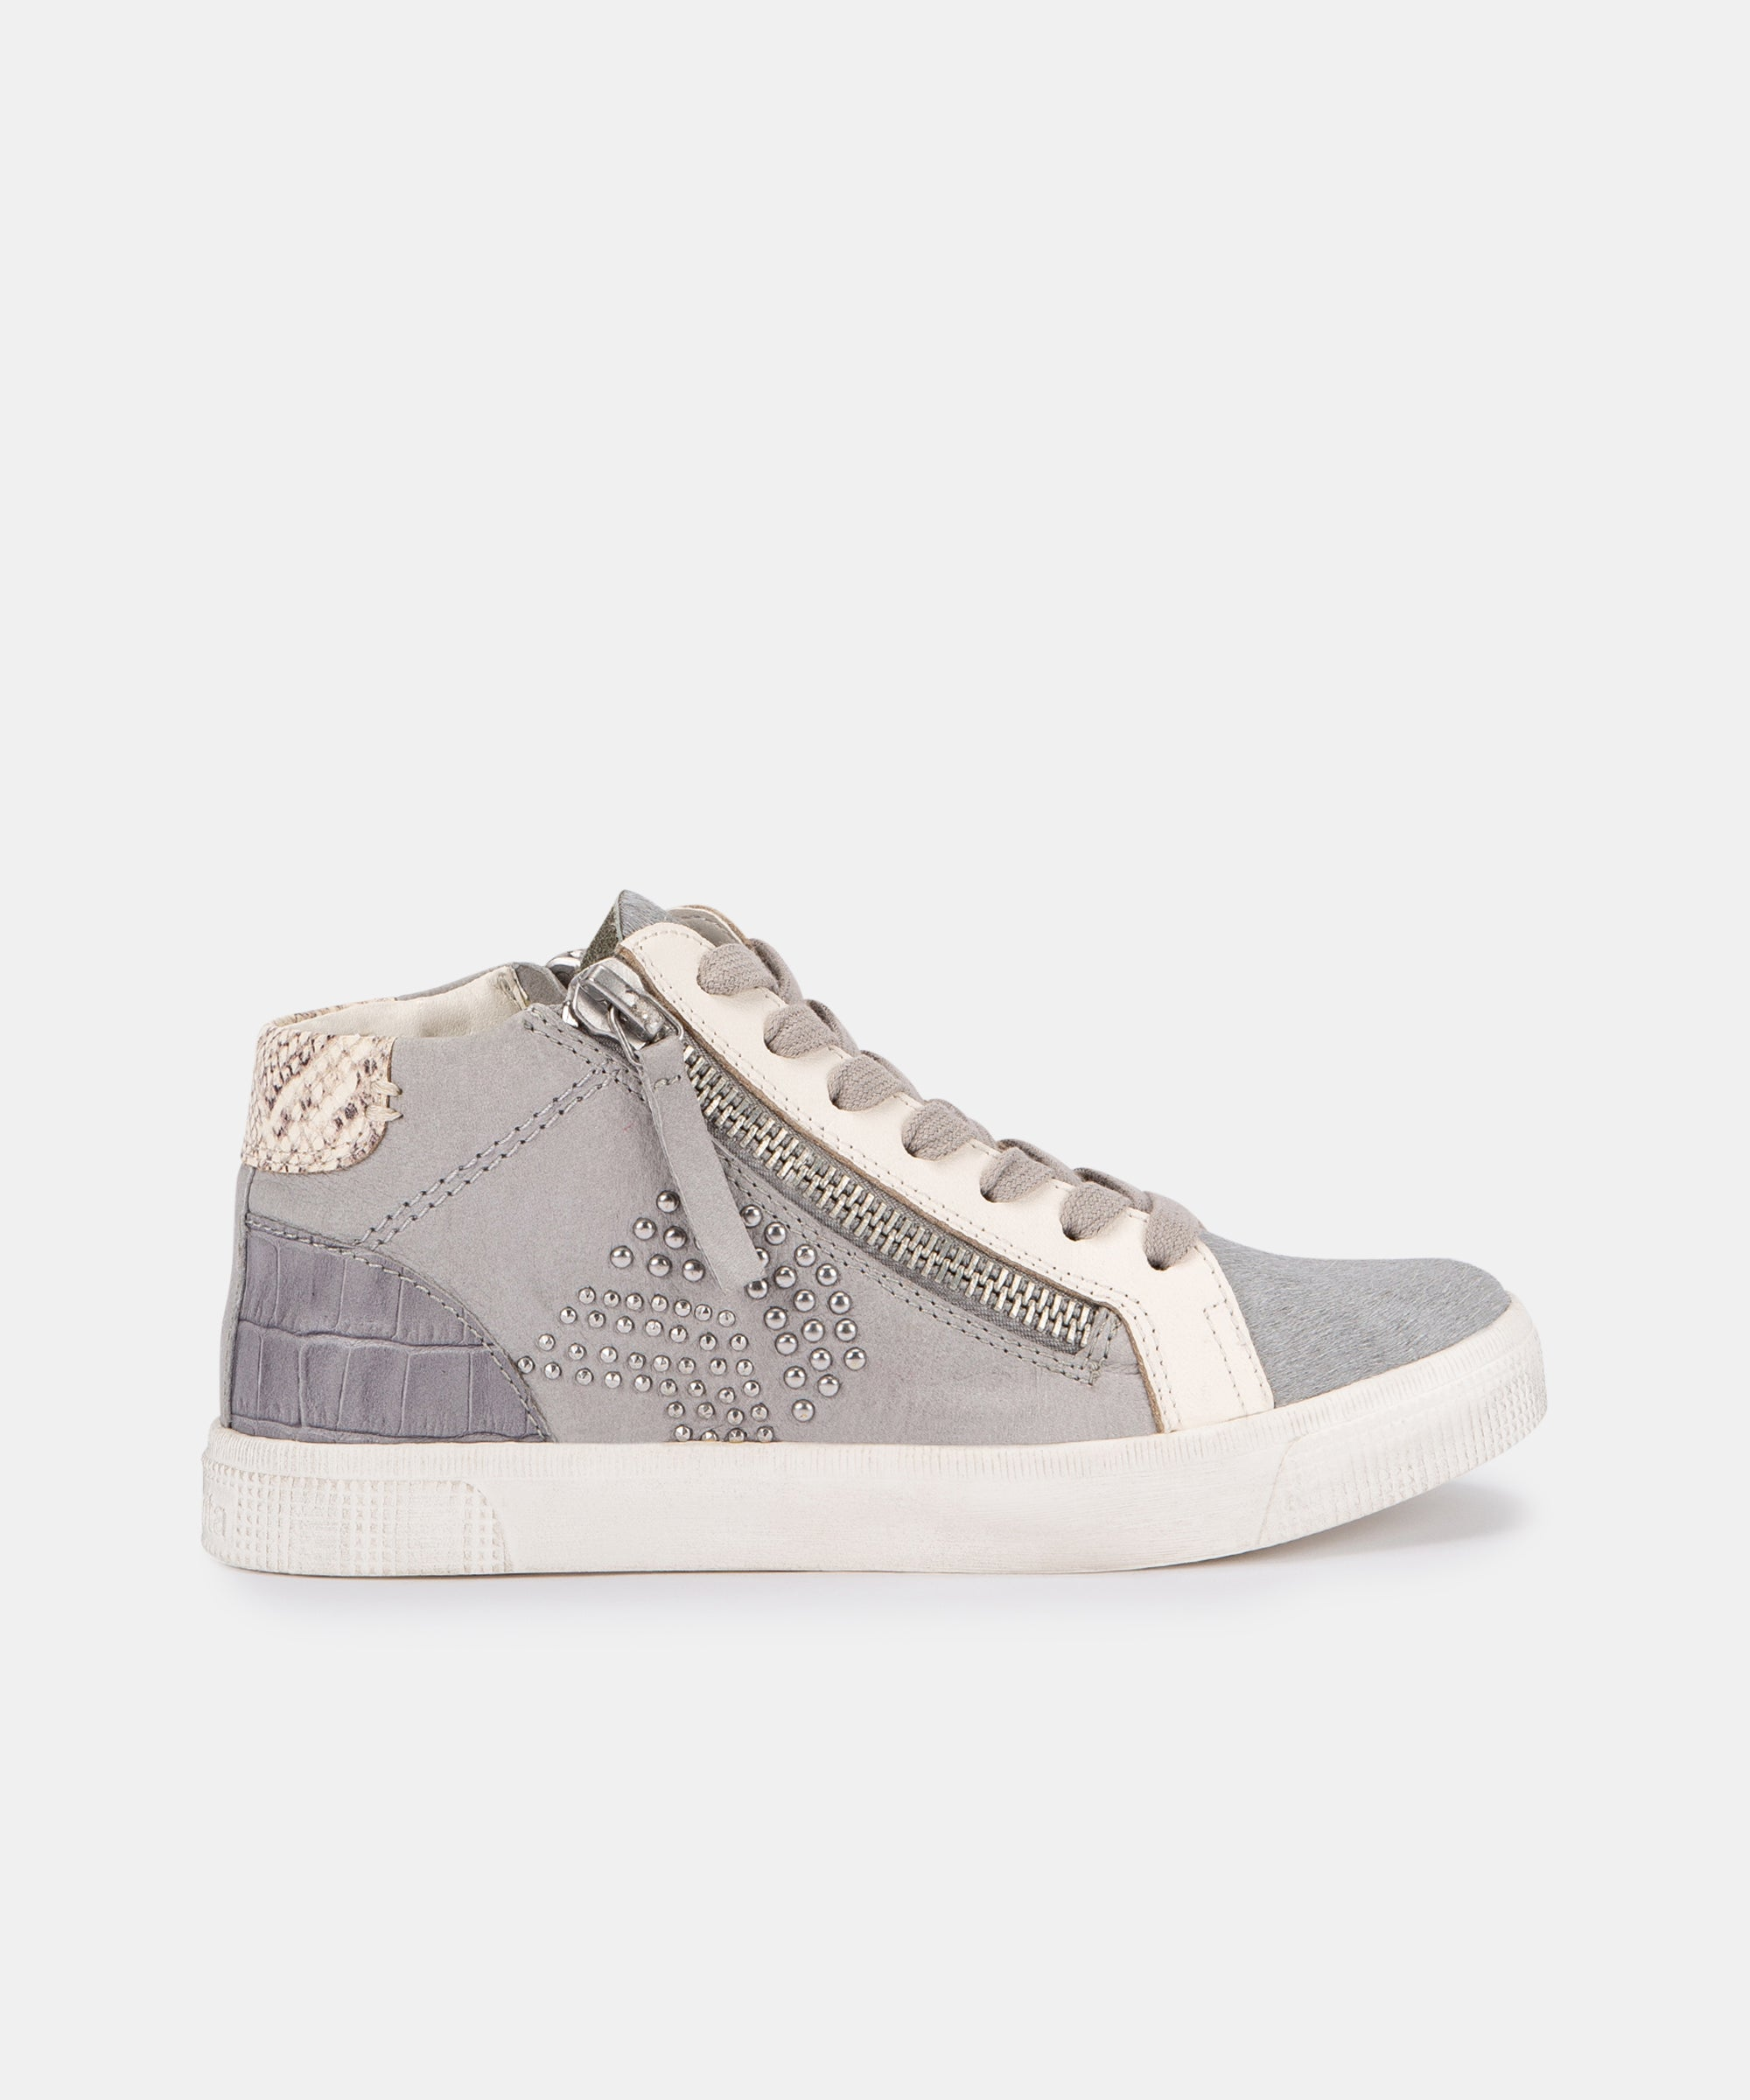 ZONYA SNEAKERS IN GREY MULTI STUDDED LEATHER